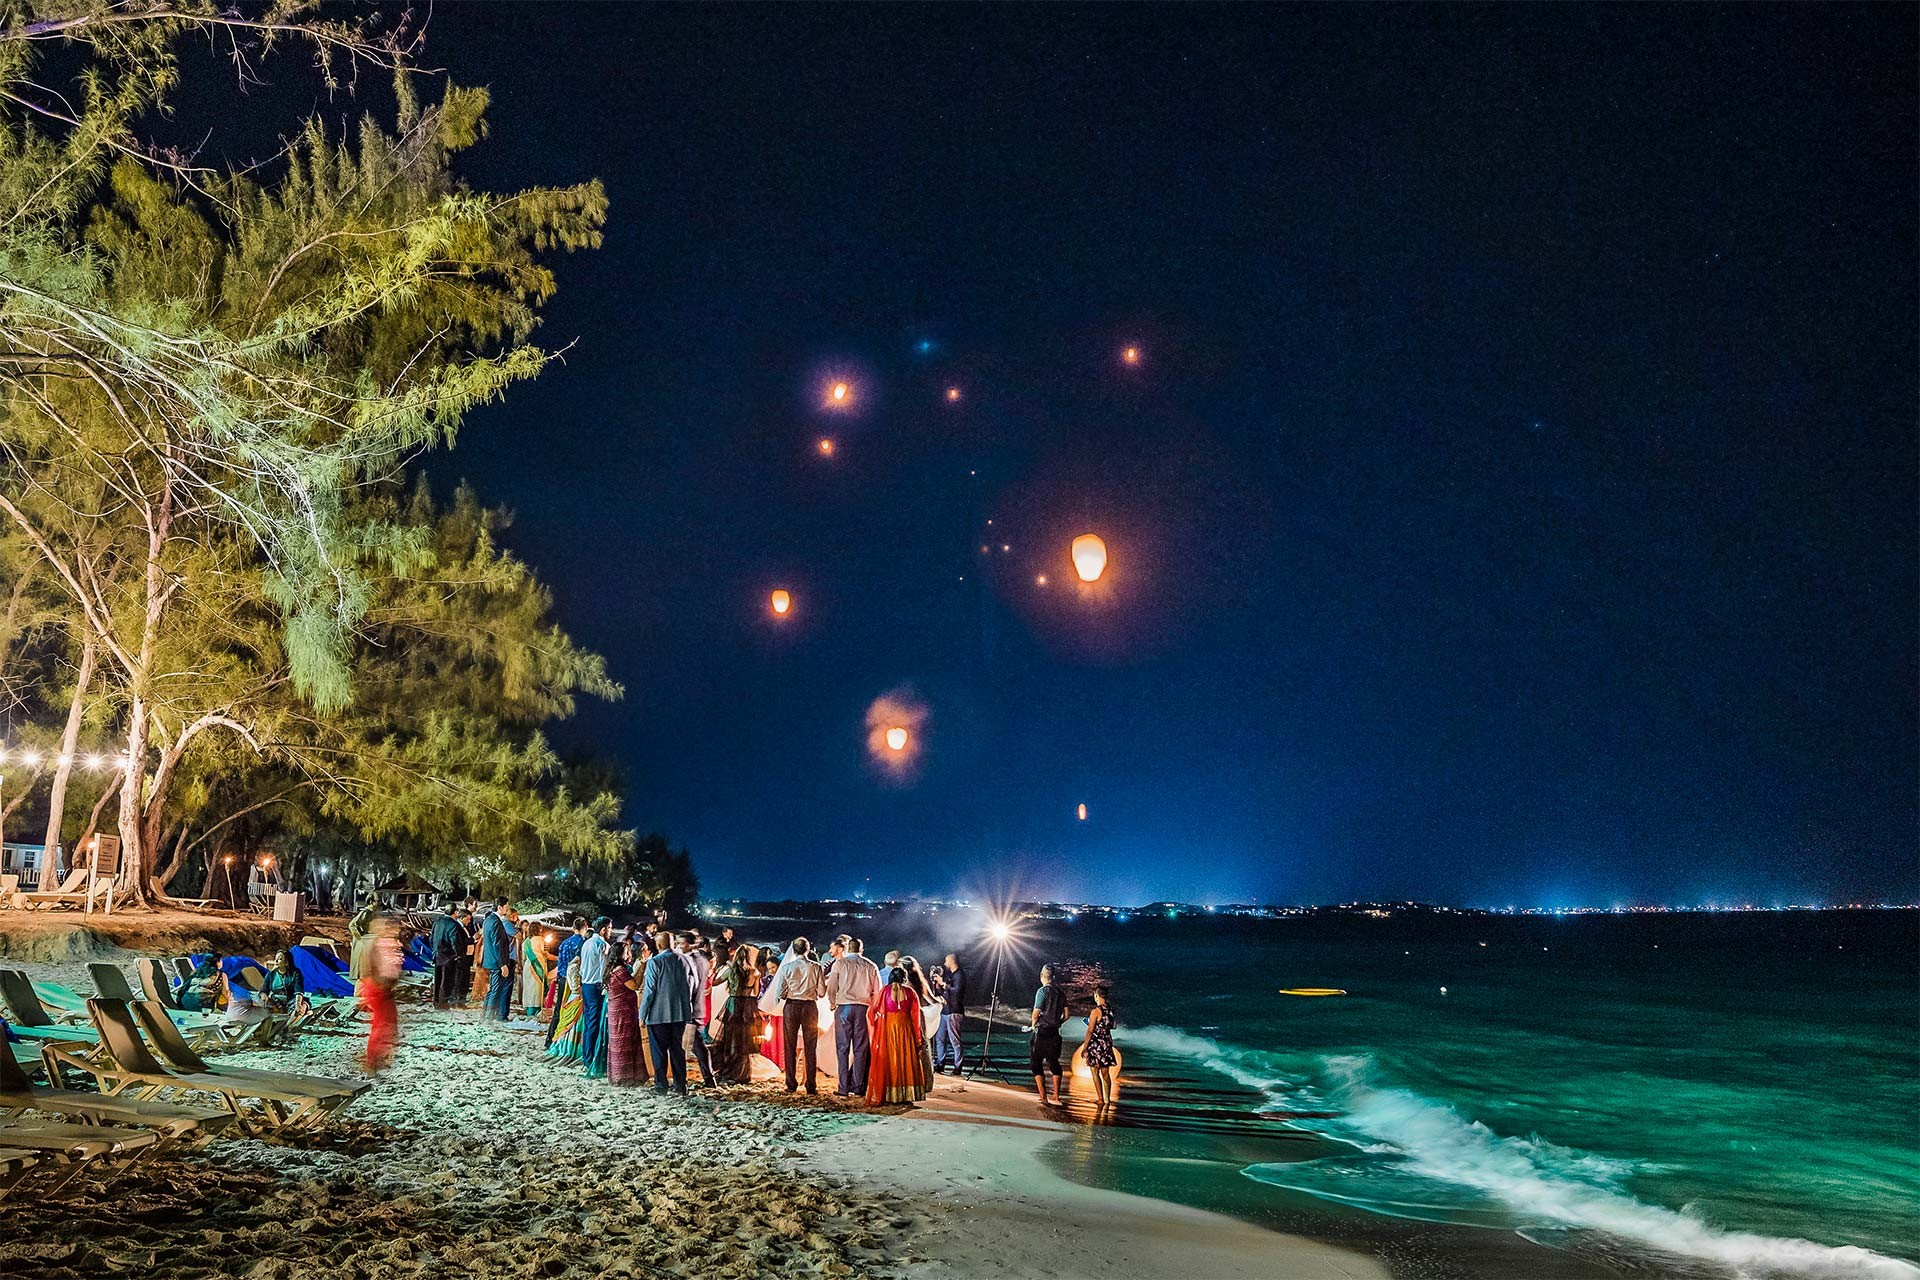 Lantern Release after bonfire for South Asian Wedding at beaches Turks & caicos